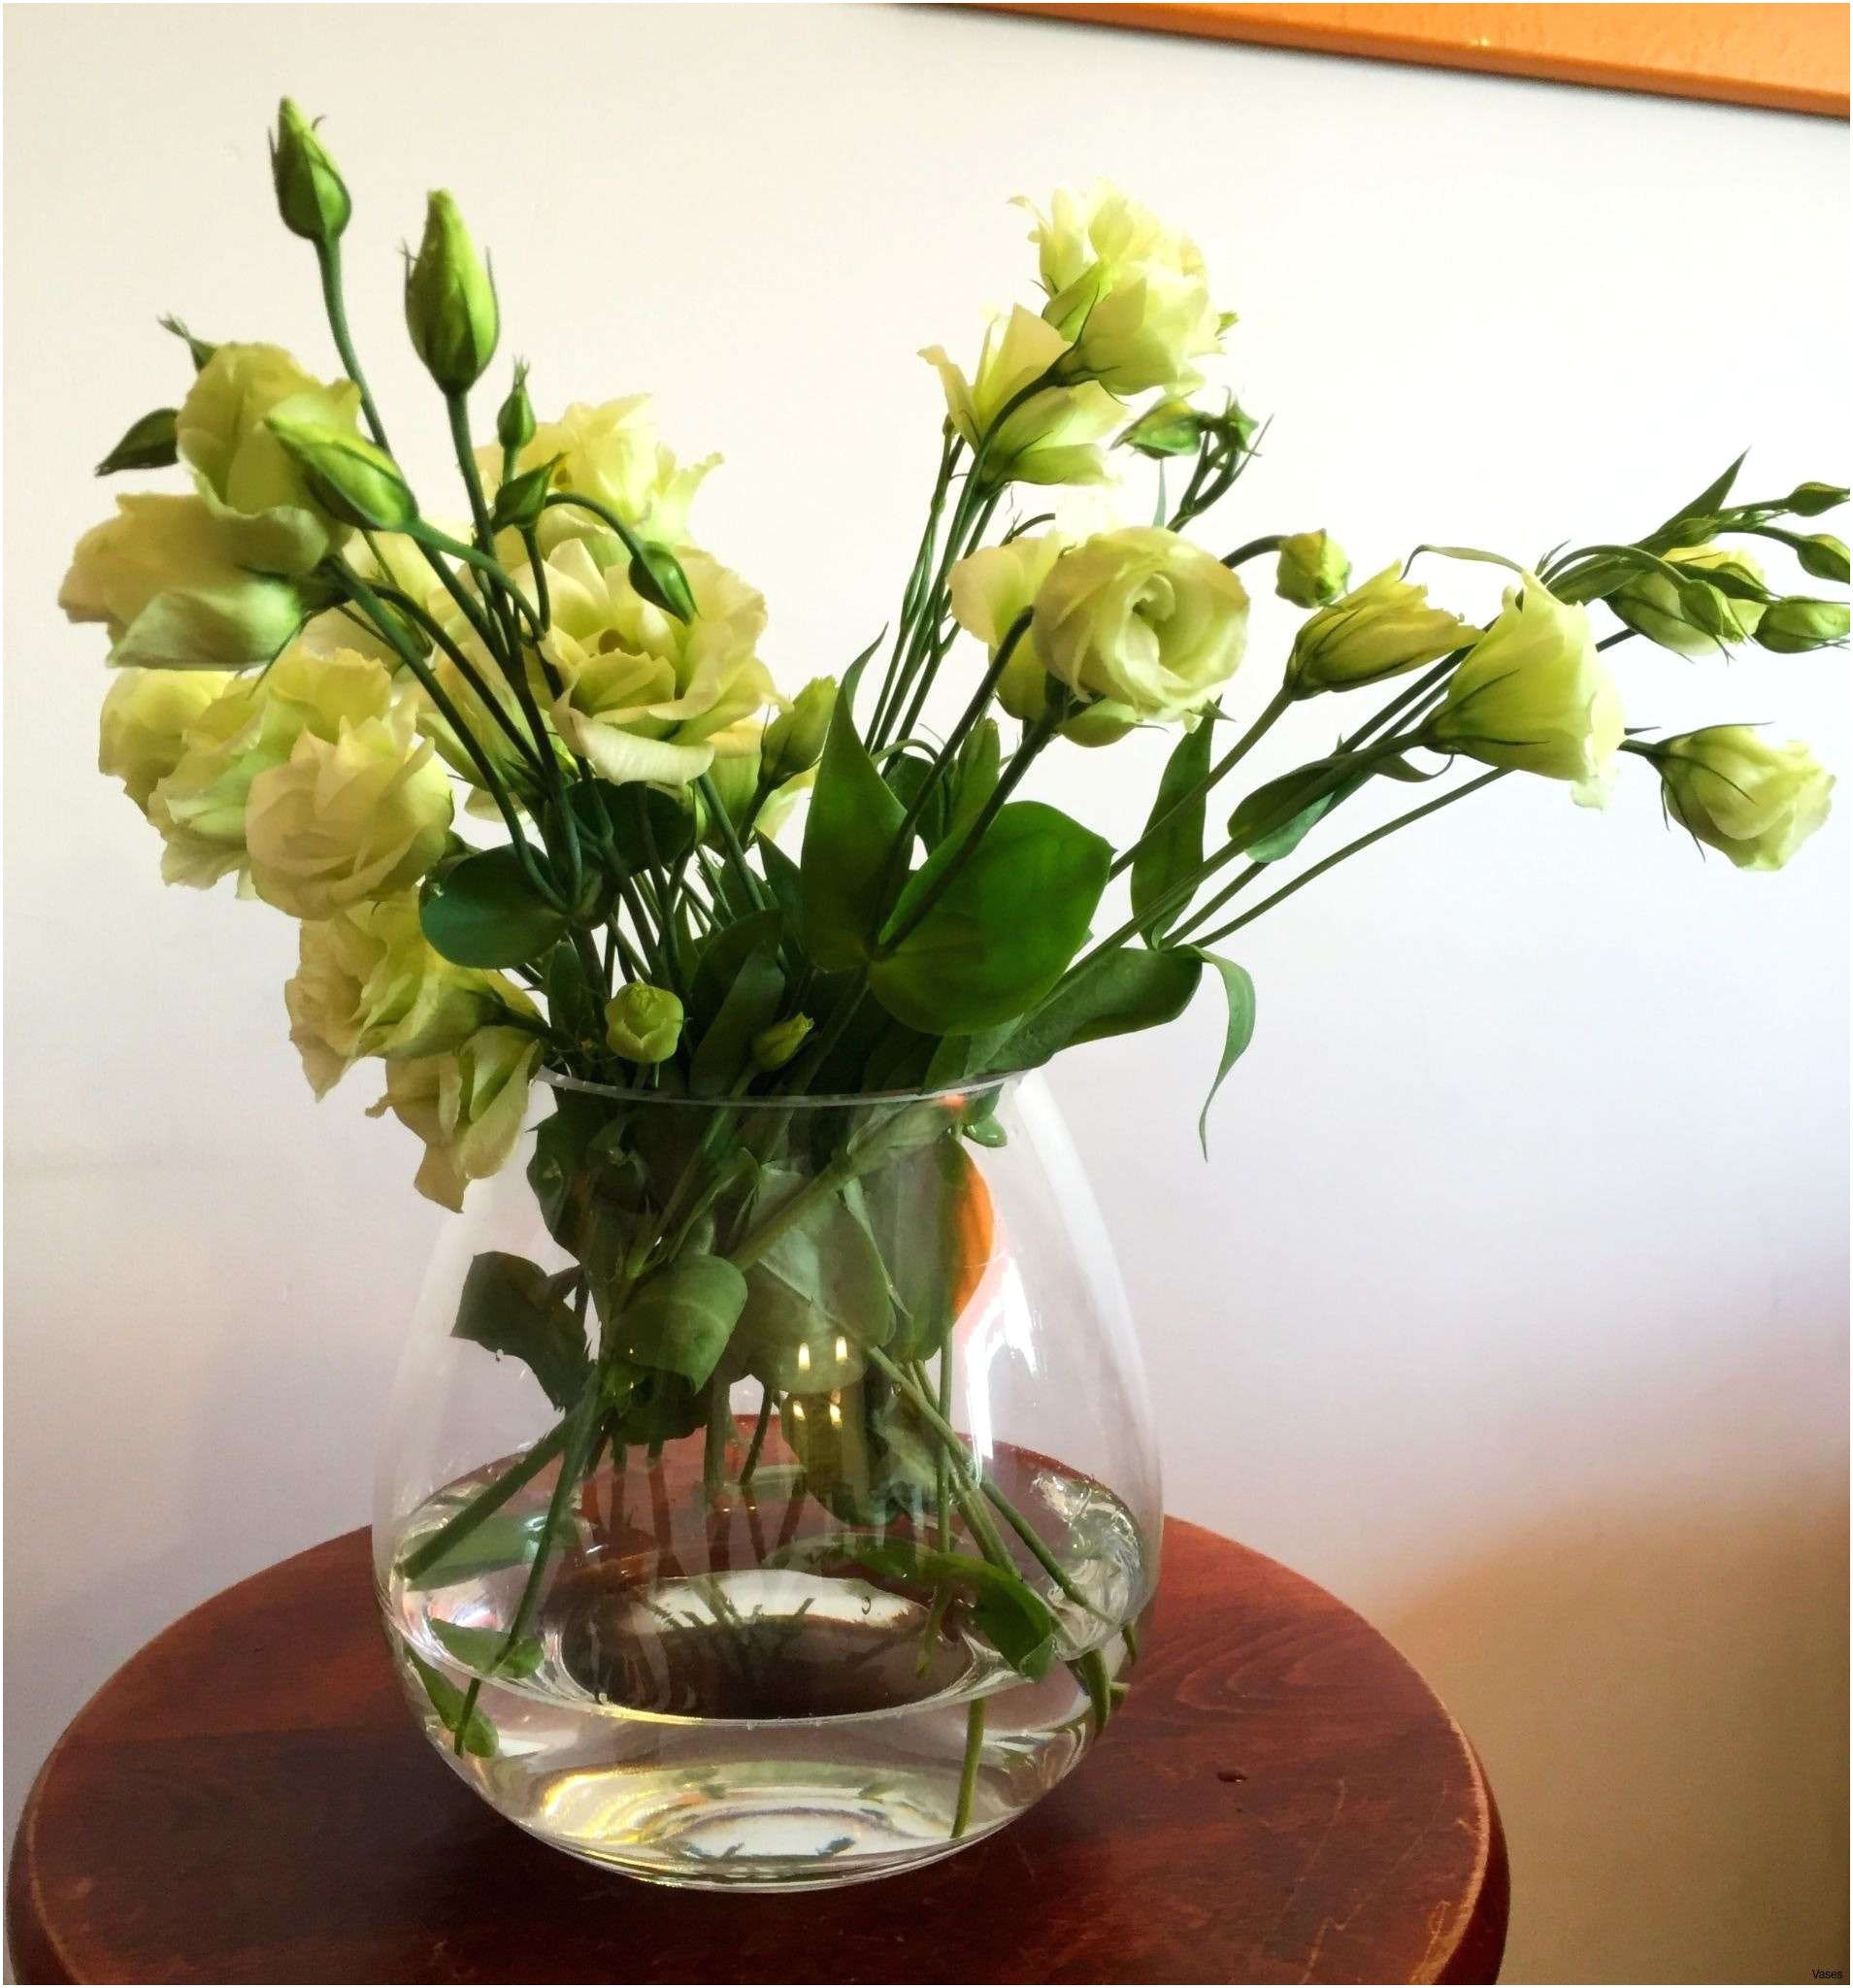 17 Spectacular Glass Flower Vases